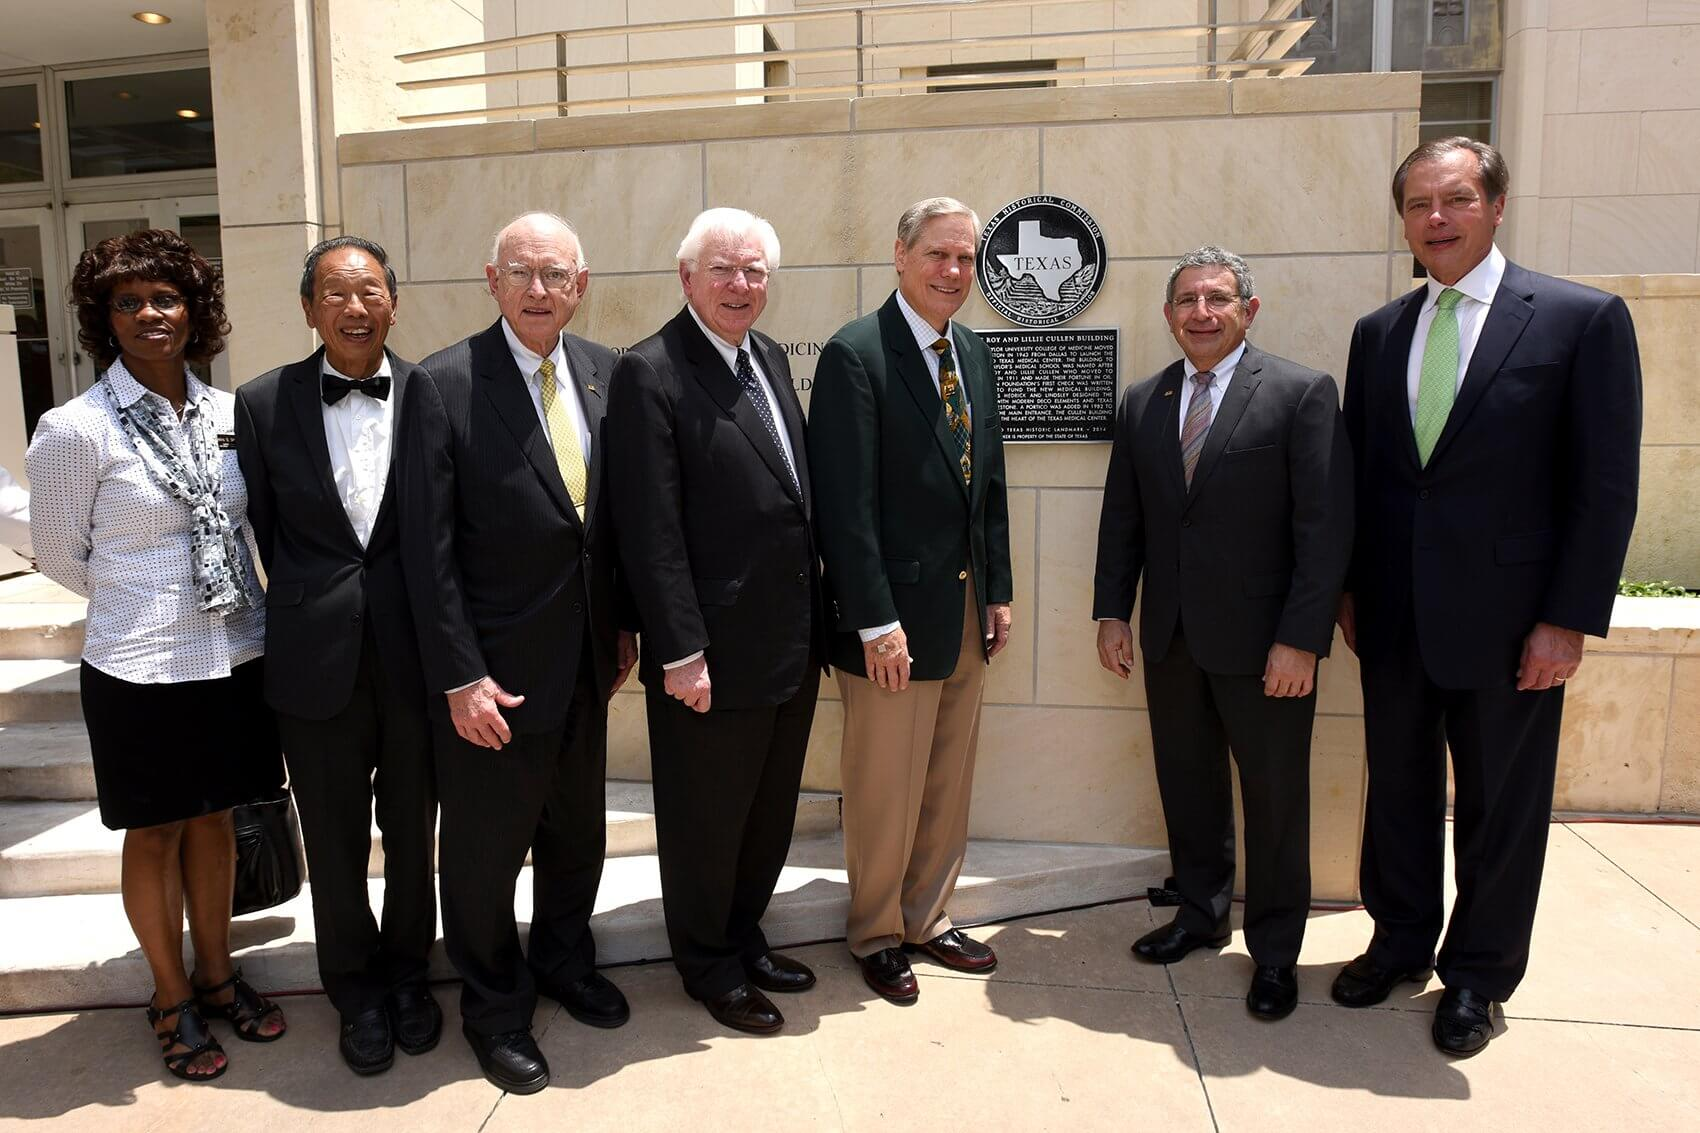 "From left to right: Debra Blacklock-Sloan and Dr. Edward C. ""Ed"" Ming Chen of the Harris County Historical Commission; Dr. William T. Butler, chancellor emeritus at Baylor College of Medicine; former Texas Governor Mark White; Corbin Robertson, Jr., grandson of Roy and Lillie Cullen and Baylor College of Medicine Trustee; Dr. Paul Klotman, president, CEO and executive dean at Baylor College of Medicine; and former Texas Lieutenant Governor David Dewhurst."